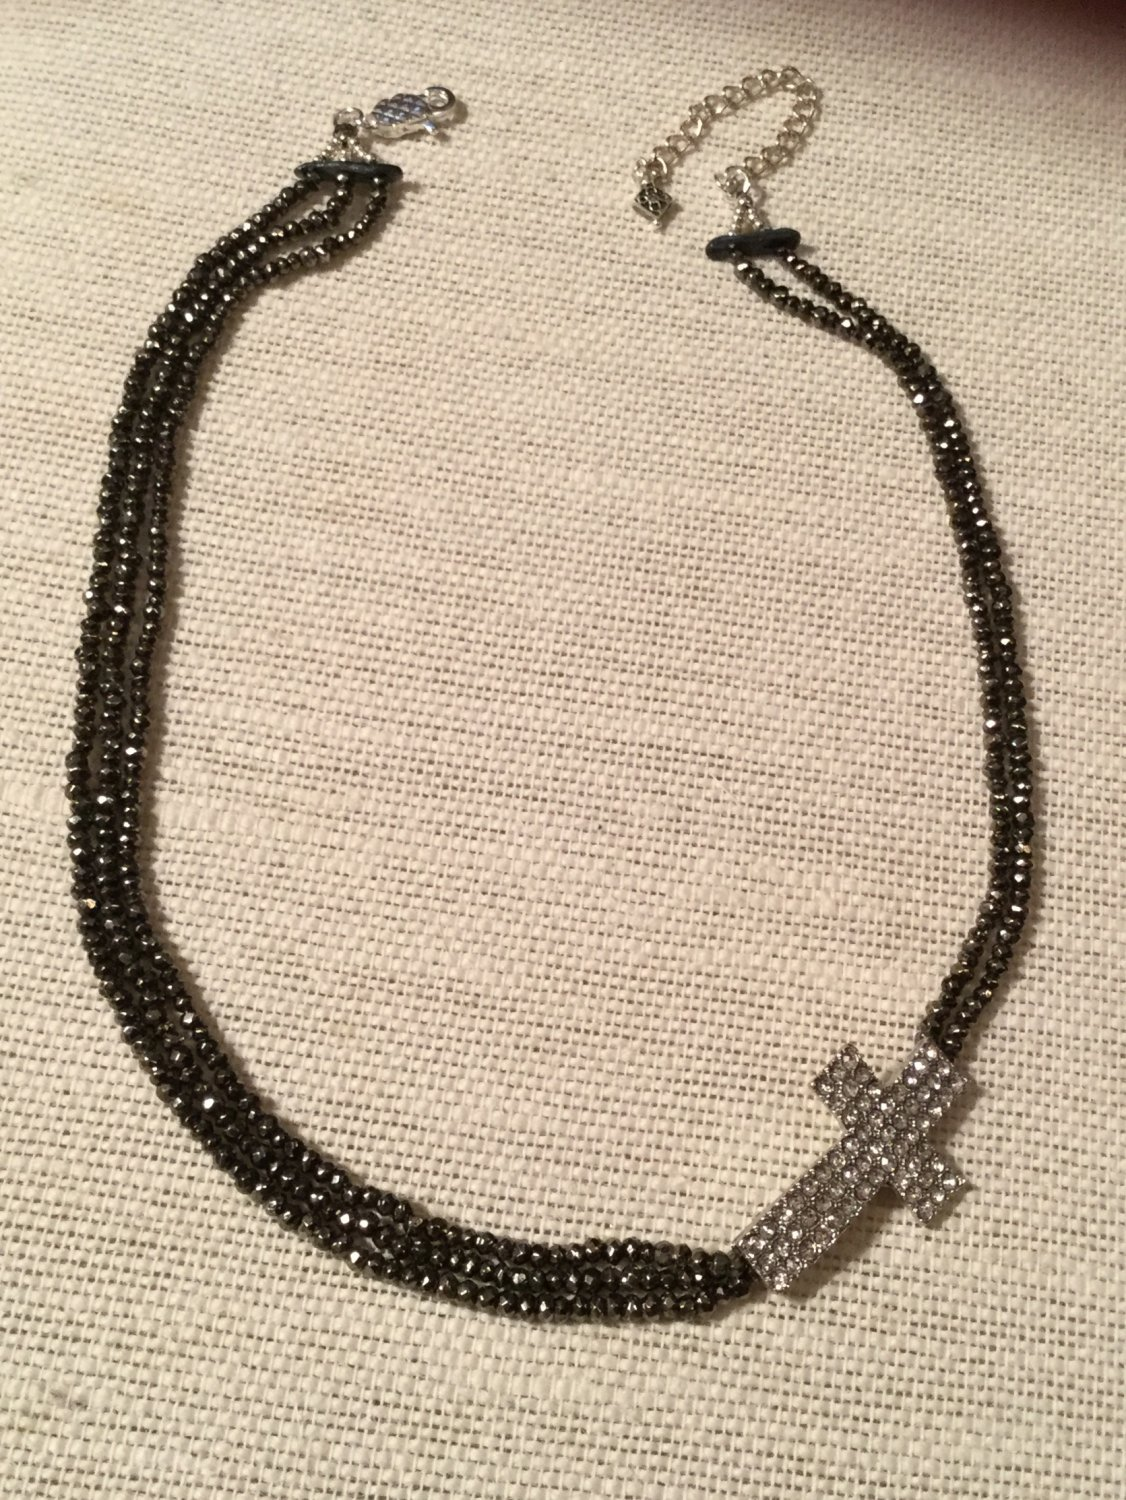 Women's  Glistening Charcoal Gray Gemstone and Pave Crystal Cross Necklace